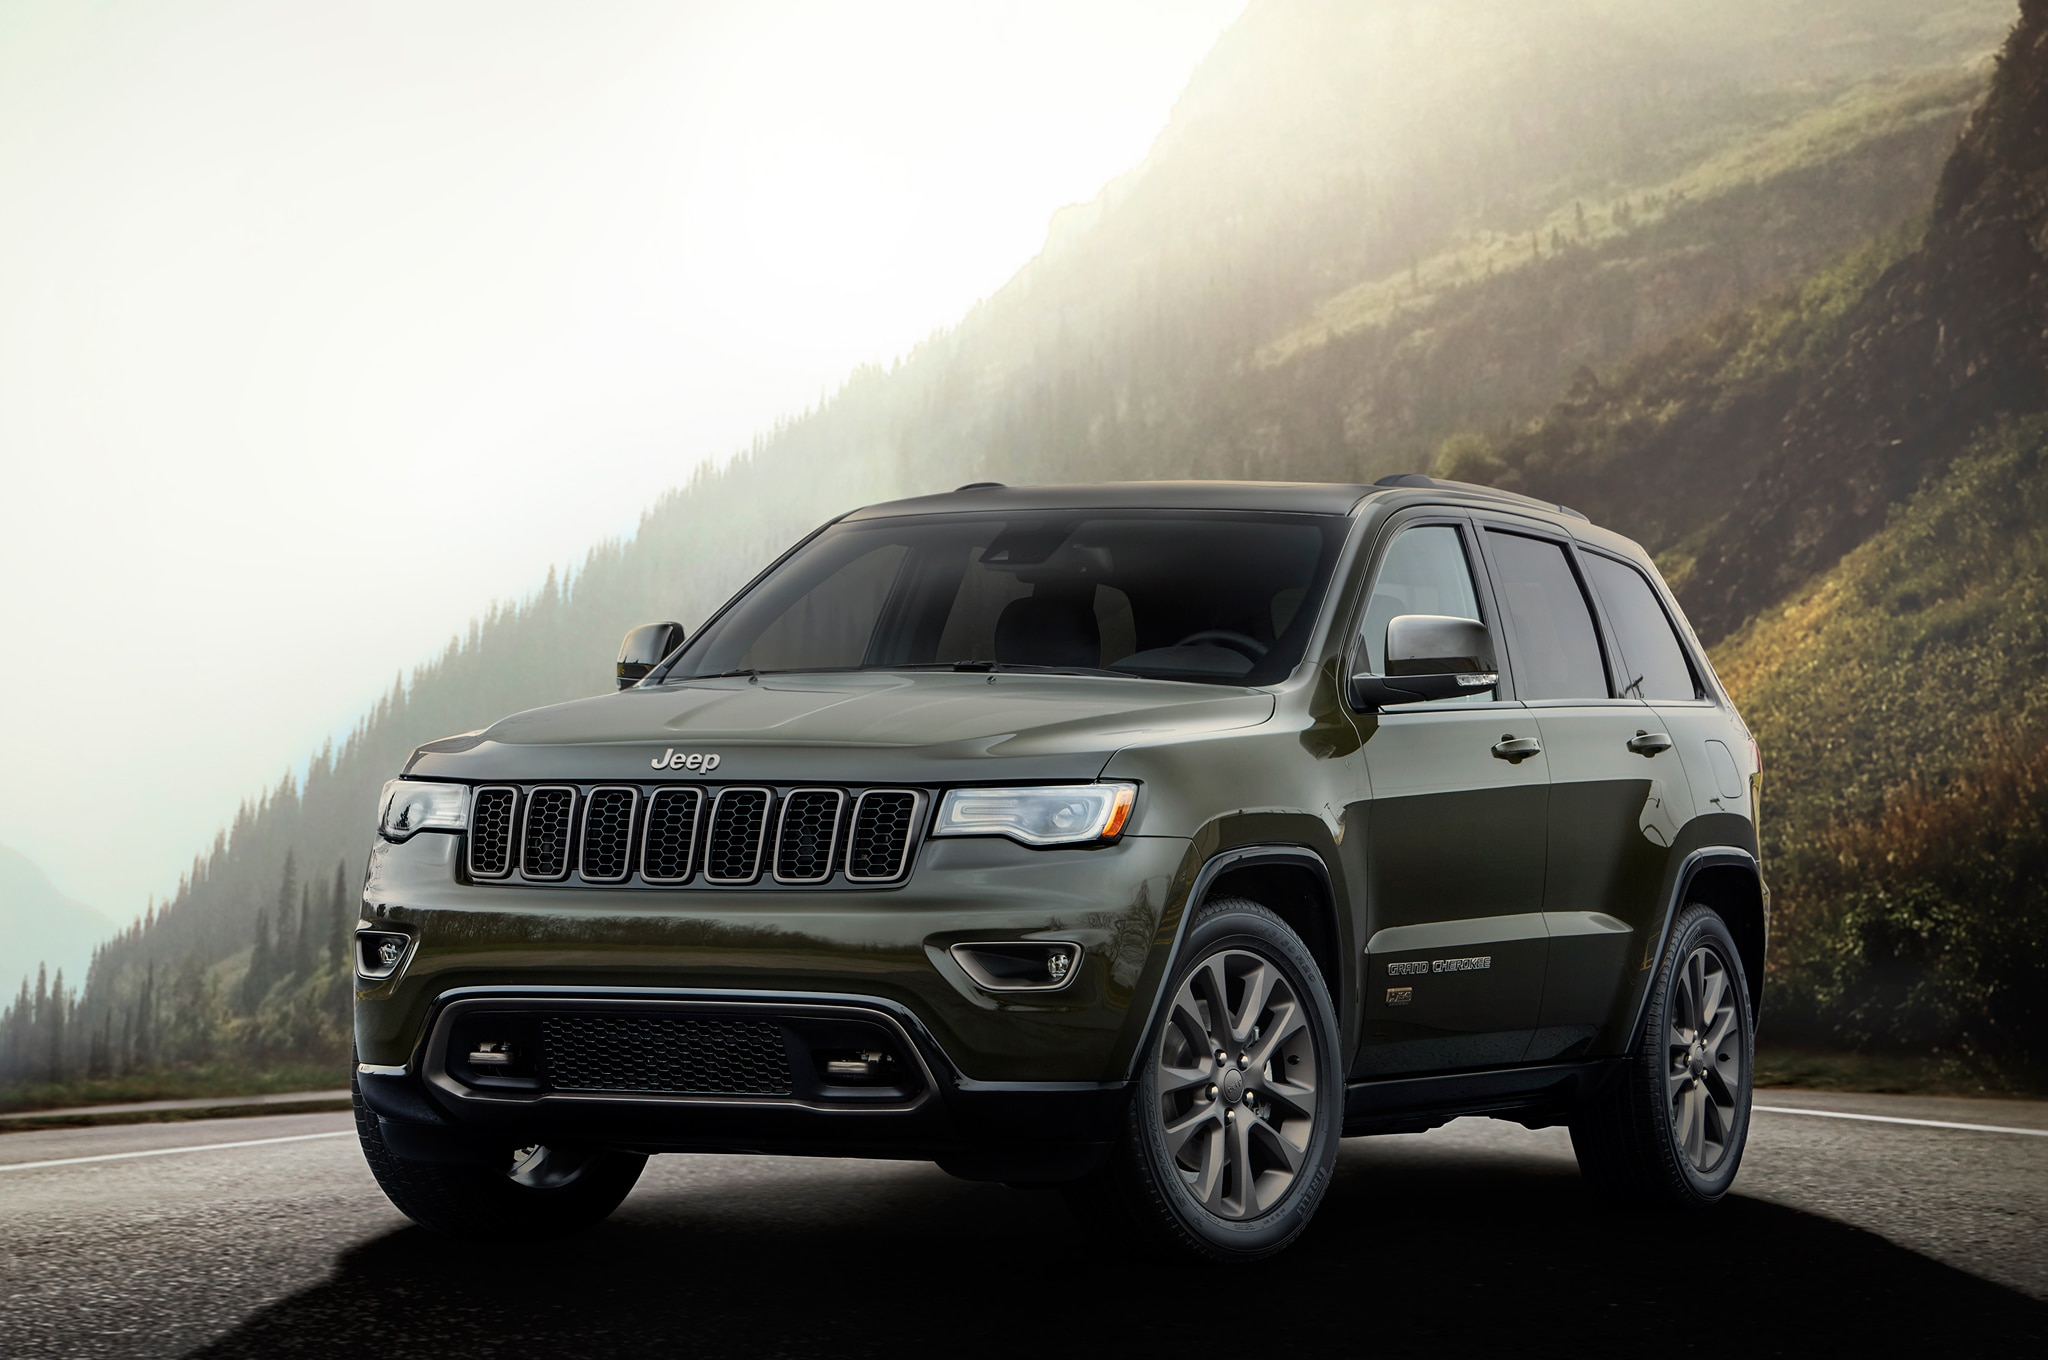 Jeep Grand Cherokee Ecodiesel >> 2016 Jeep Grand Cherokee Improves MPG, Adds Engine Stop-Start